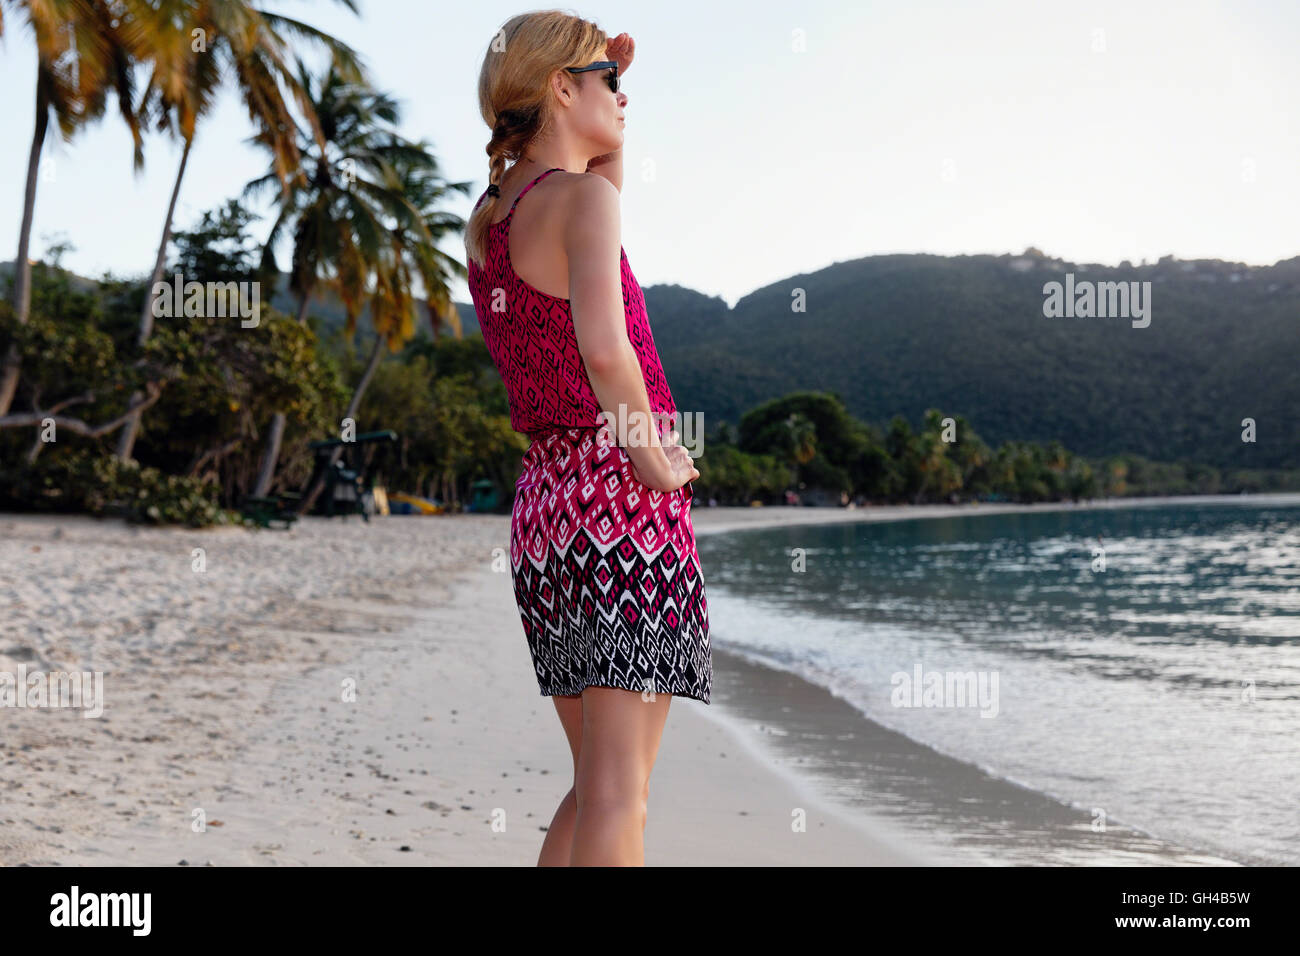 Low Angle Close Up View of a Woman in Sundress on A Beach Looking Out, Magens Bay, St Thomas, US Virgin Islands - Stock Image